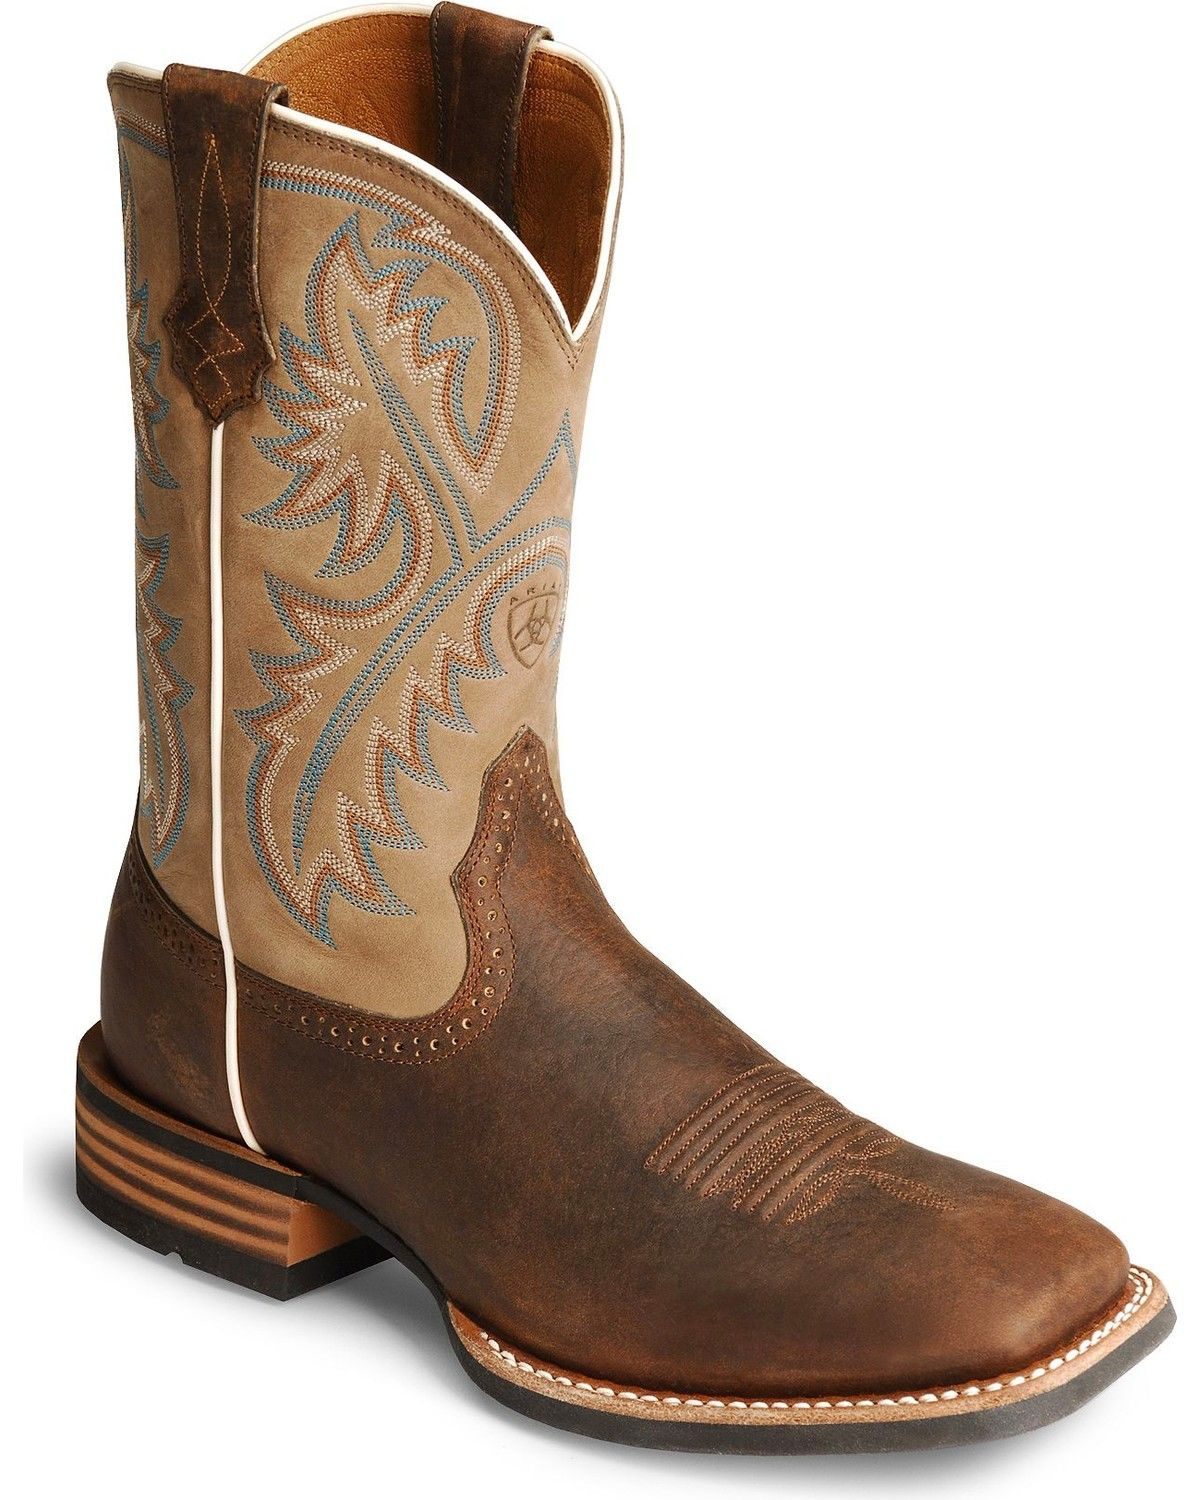 Ariat Mens Quickdraw Western Boots, Bark, hi-res